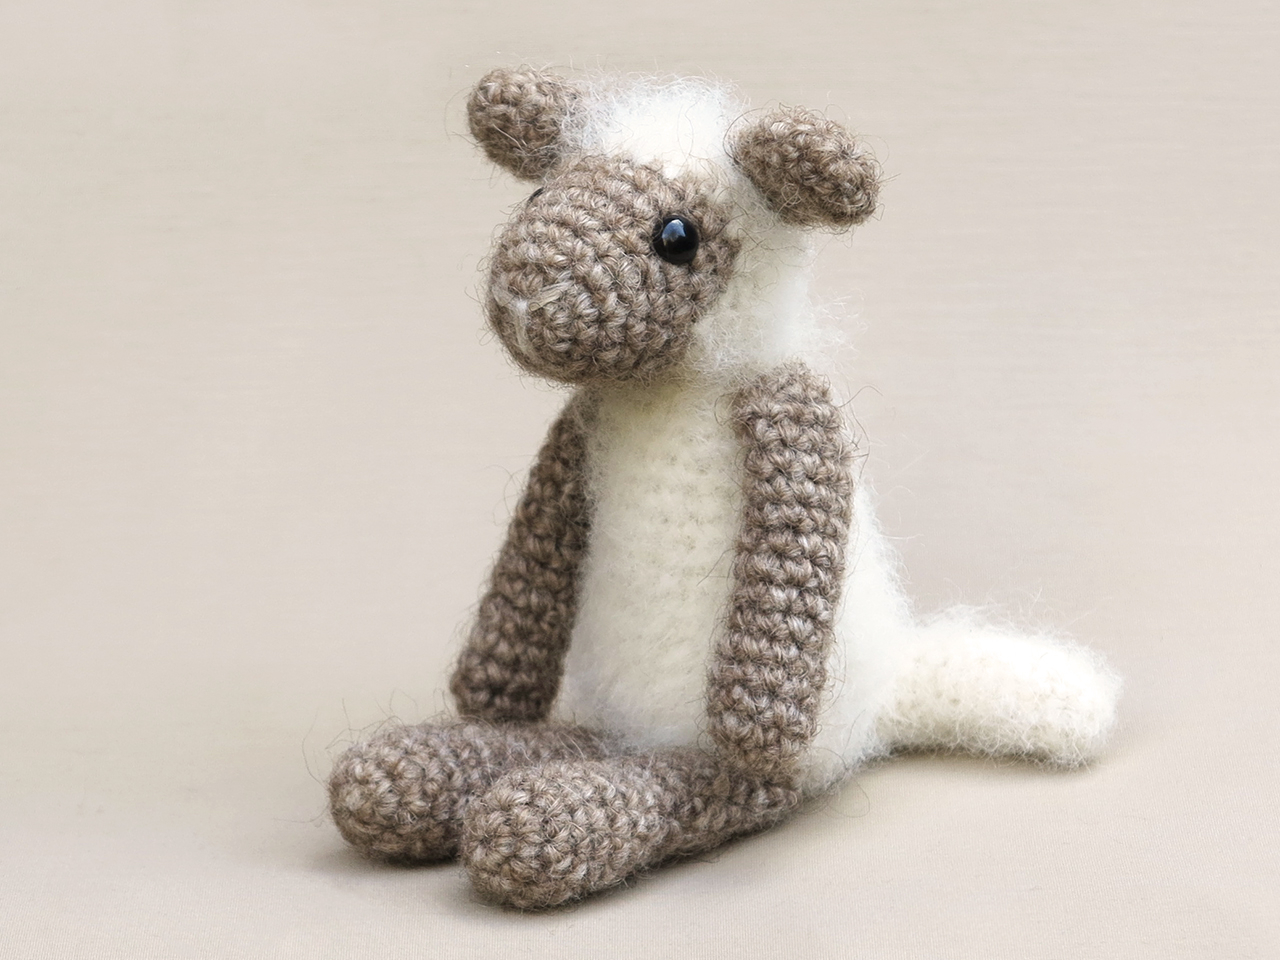 The Sweetest Crochet Lamb Patterns for Free Balloo Crochet Sheep Pattern Sons Popkes